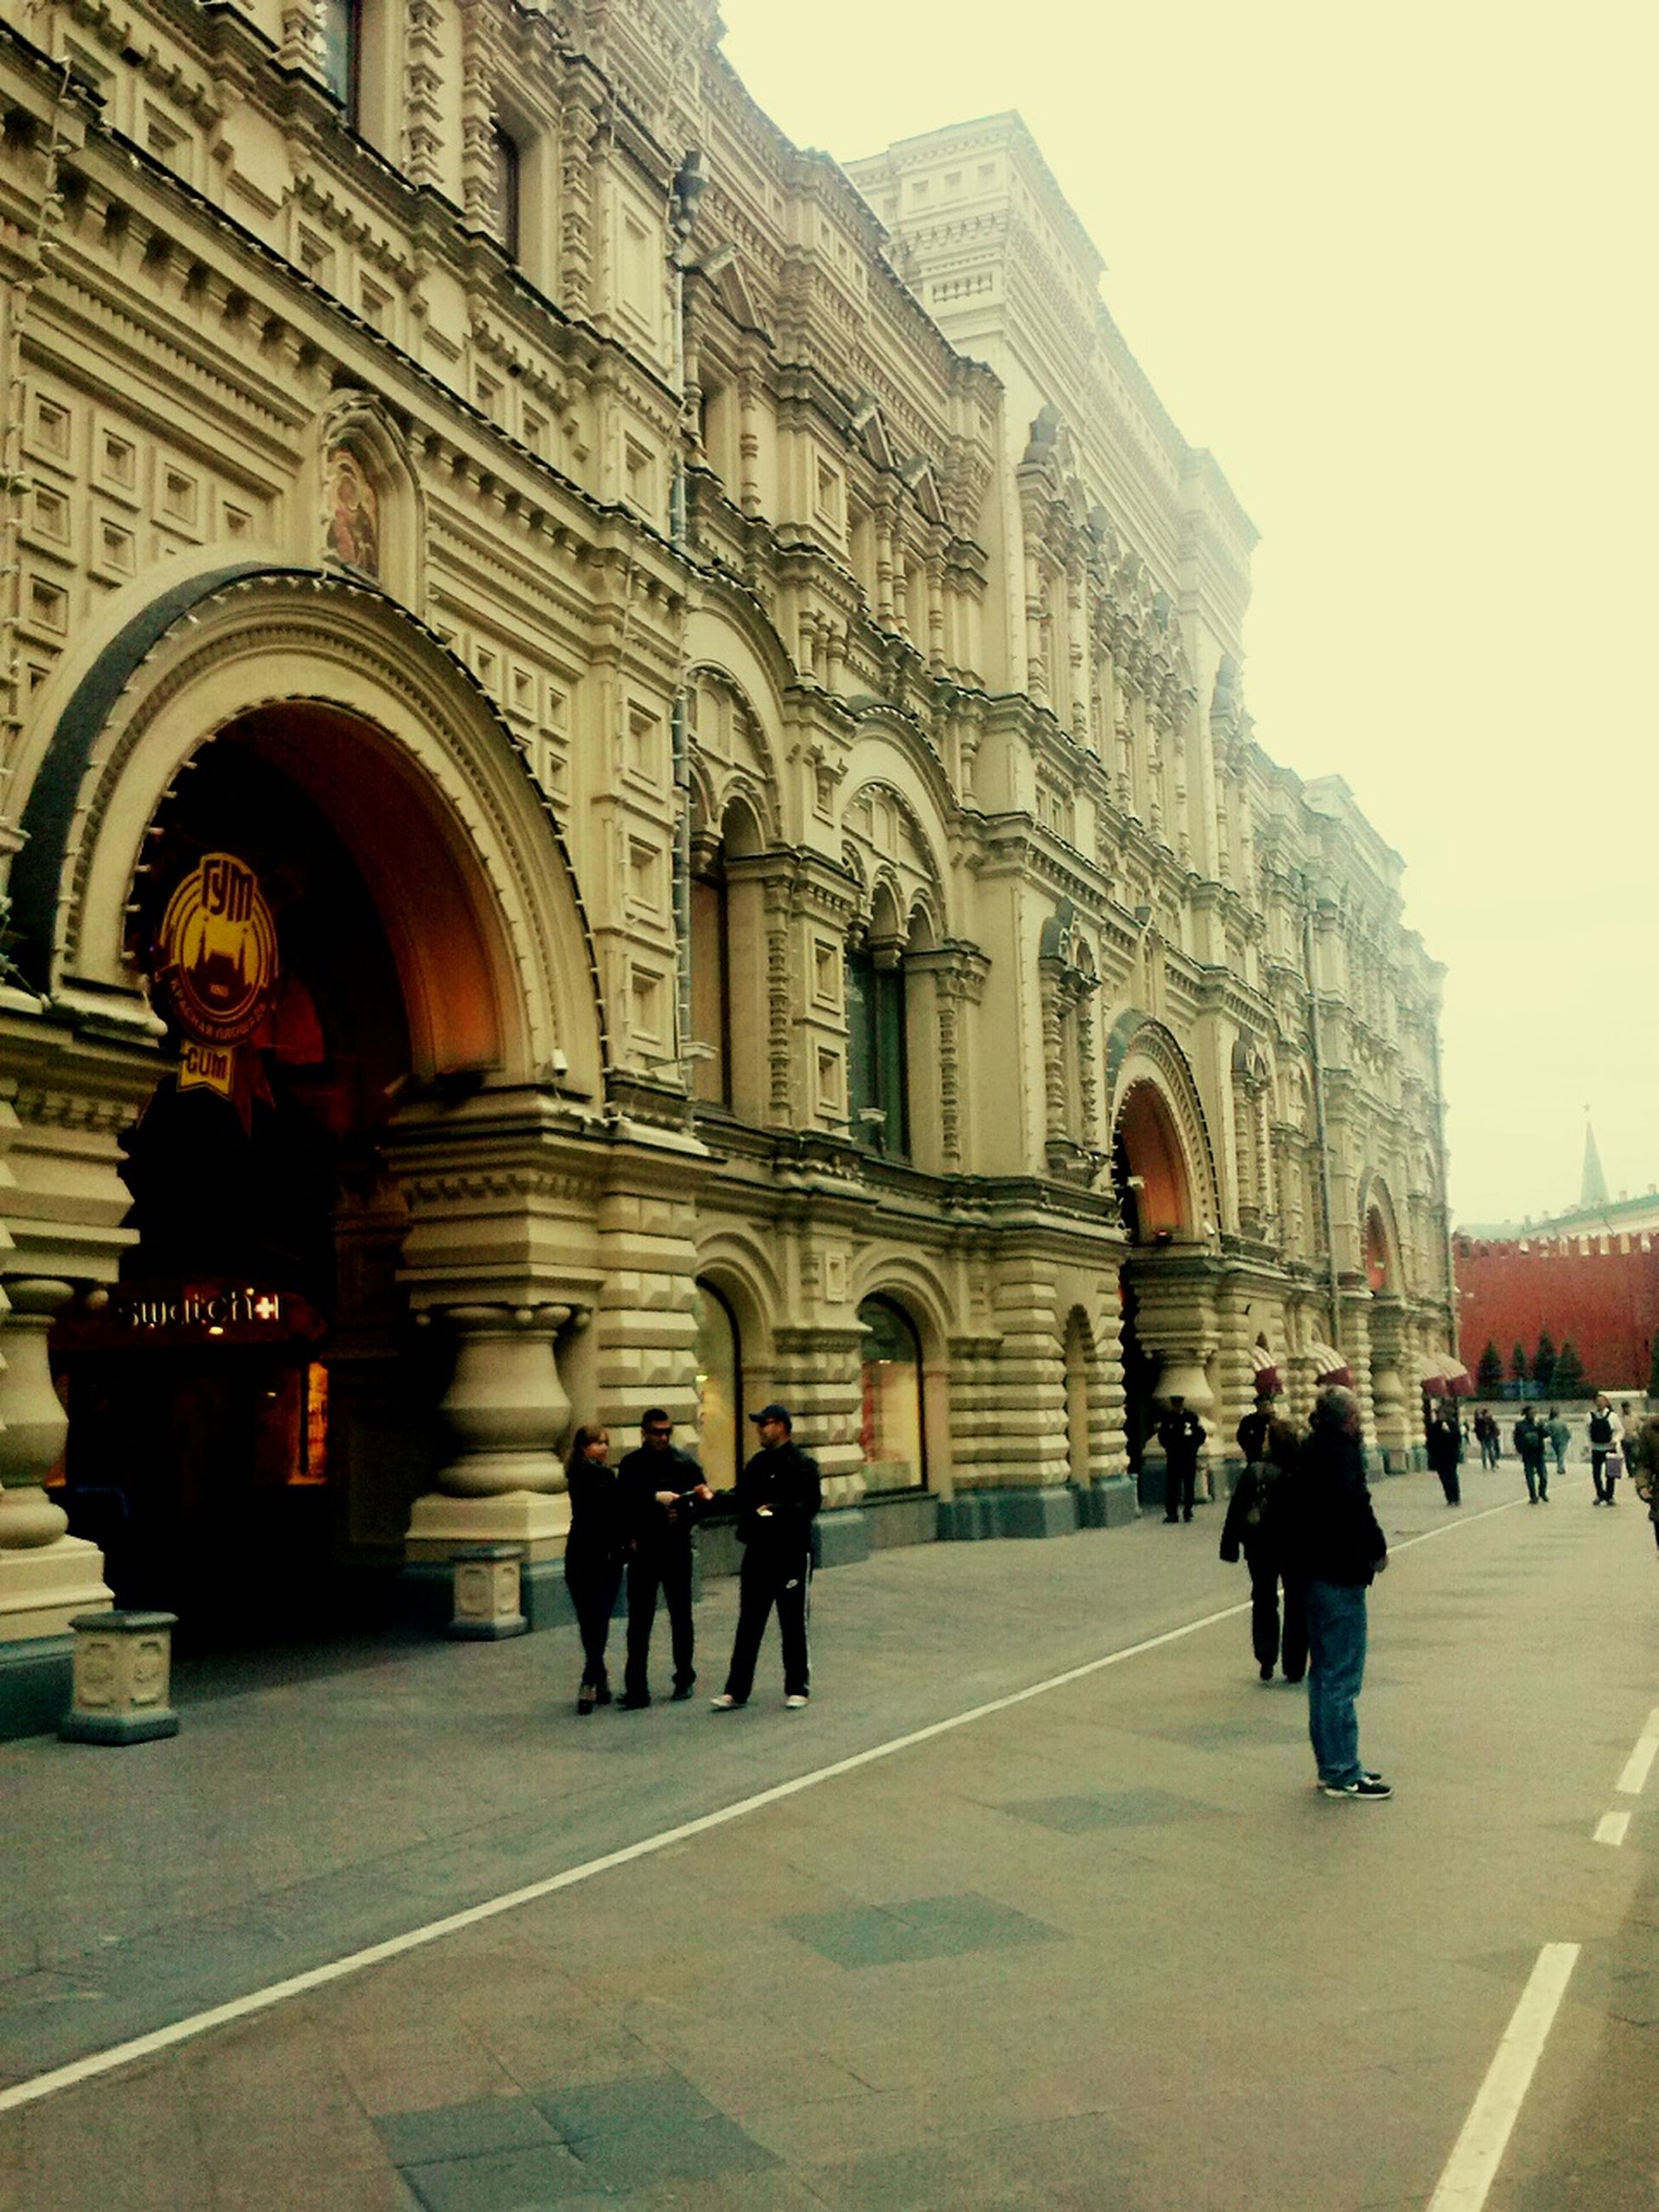 architecture, built structure, building exterior, arch, large group of people, person, walking, men, famous place, history, travel destinations, tourism, religion, place of worship, tourist, travel, international landmark, lifestyles, spirituality